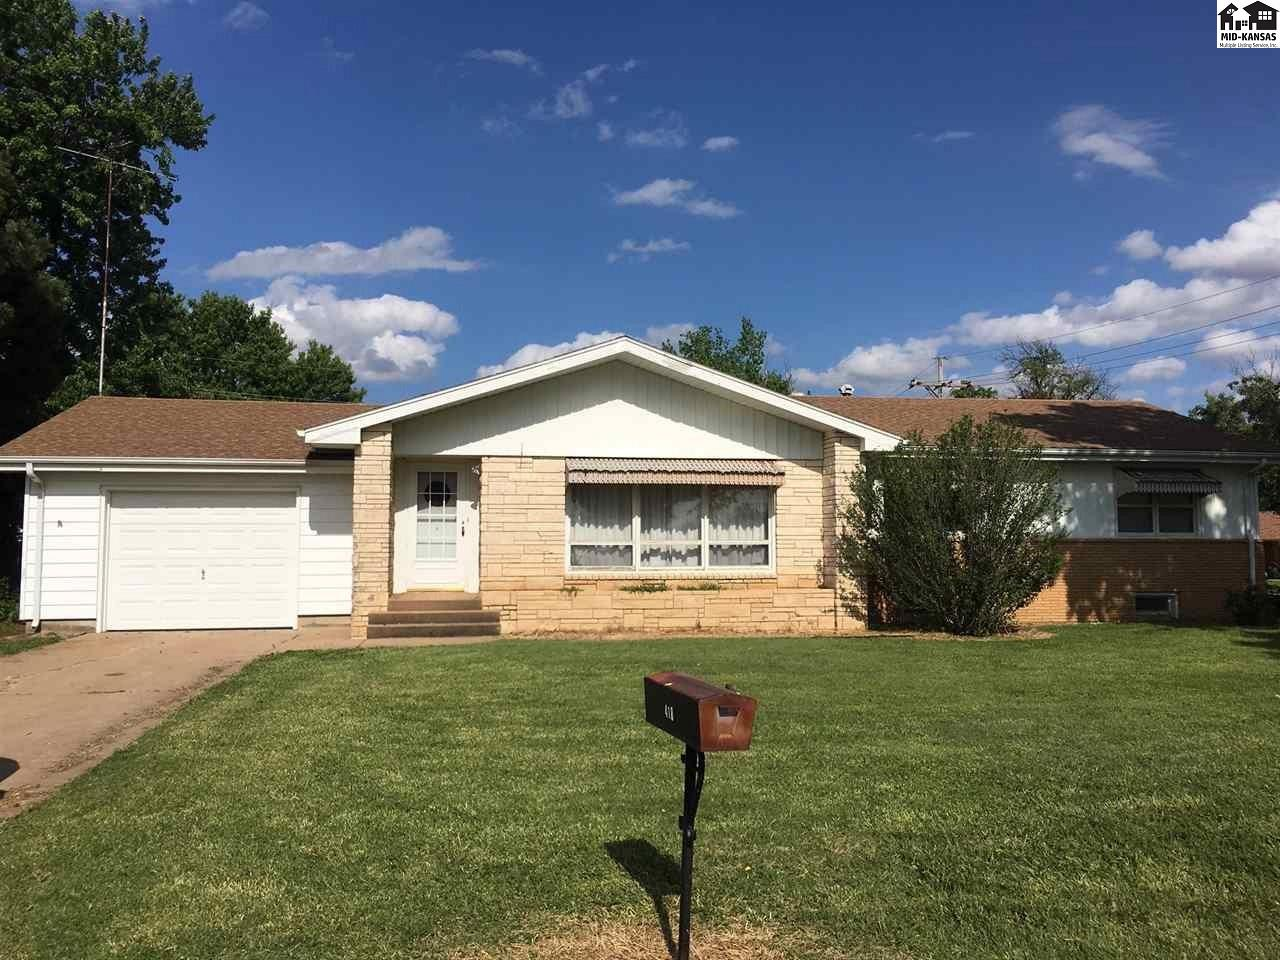 This is your chance to get a 3 bedroom, 2 bath home here in Lyons. It sits on a corner lot with a nice layout and 2 bonus rooms in the basement. Come check it out!